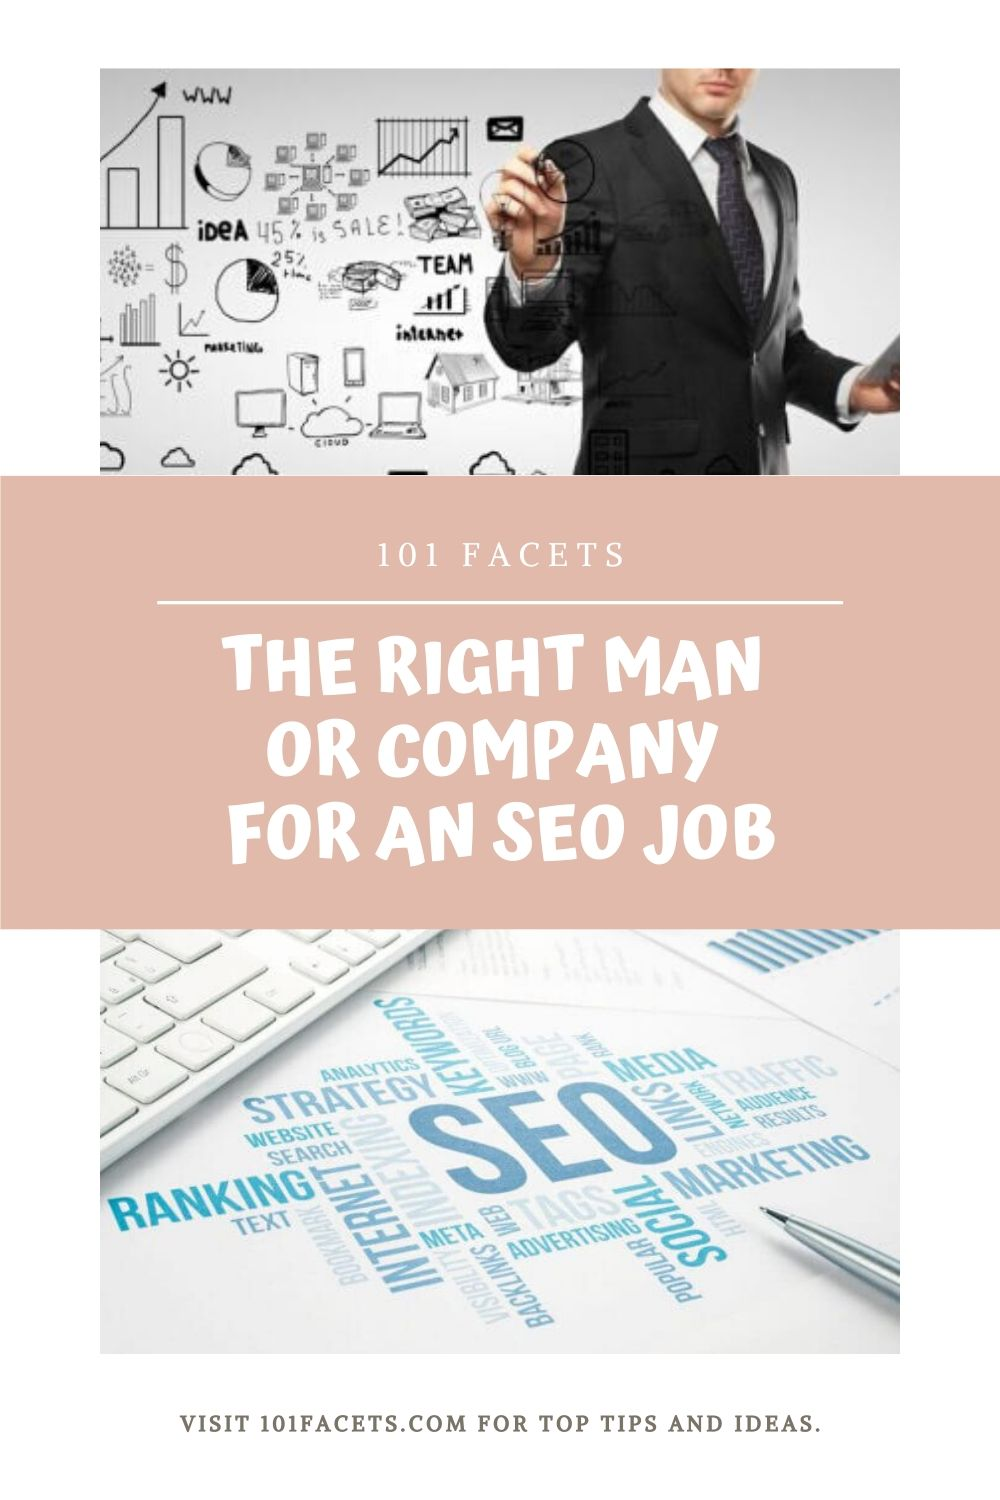 The Right Man or Company for an SEO Job